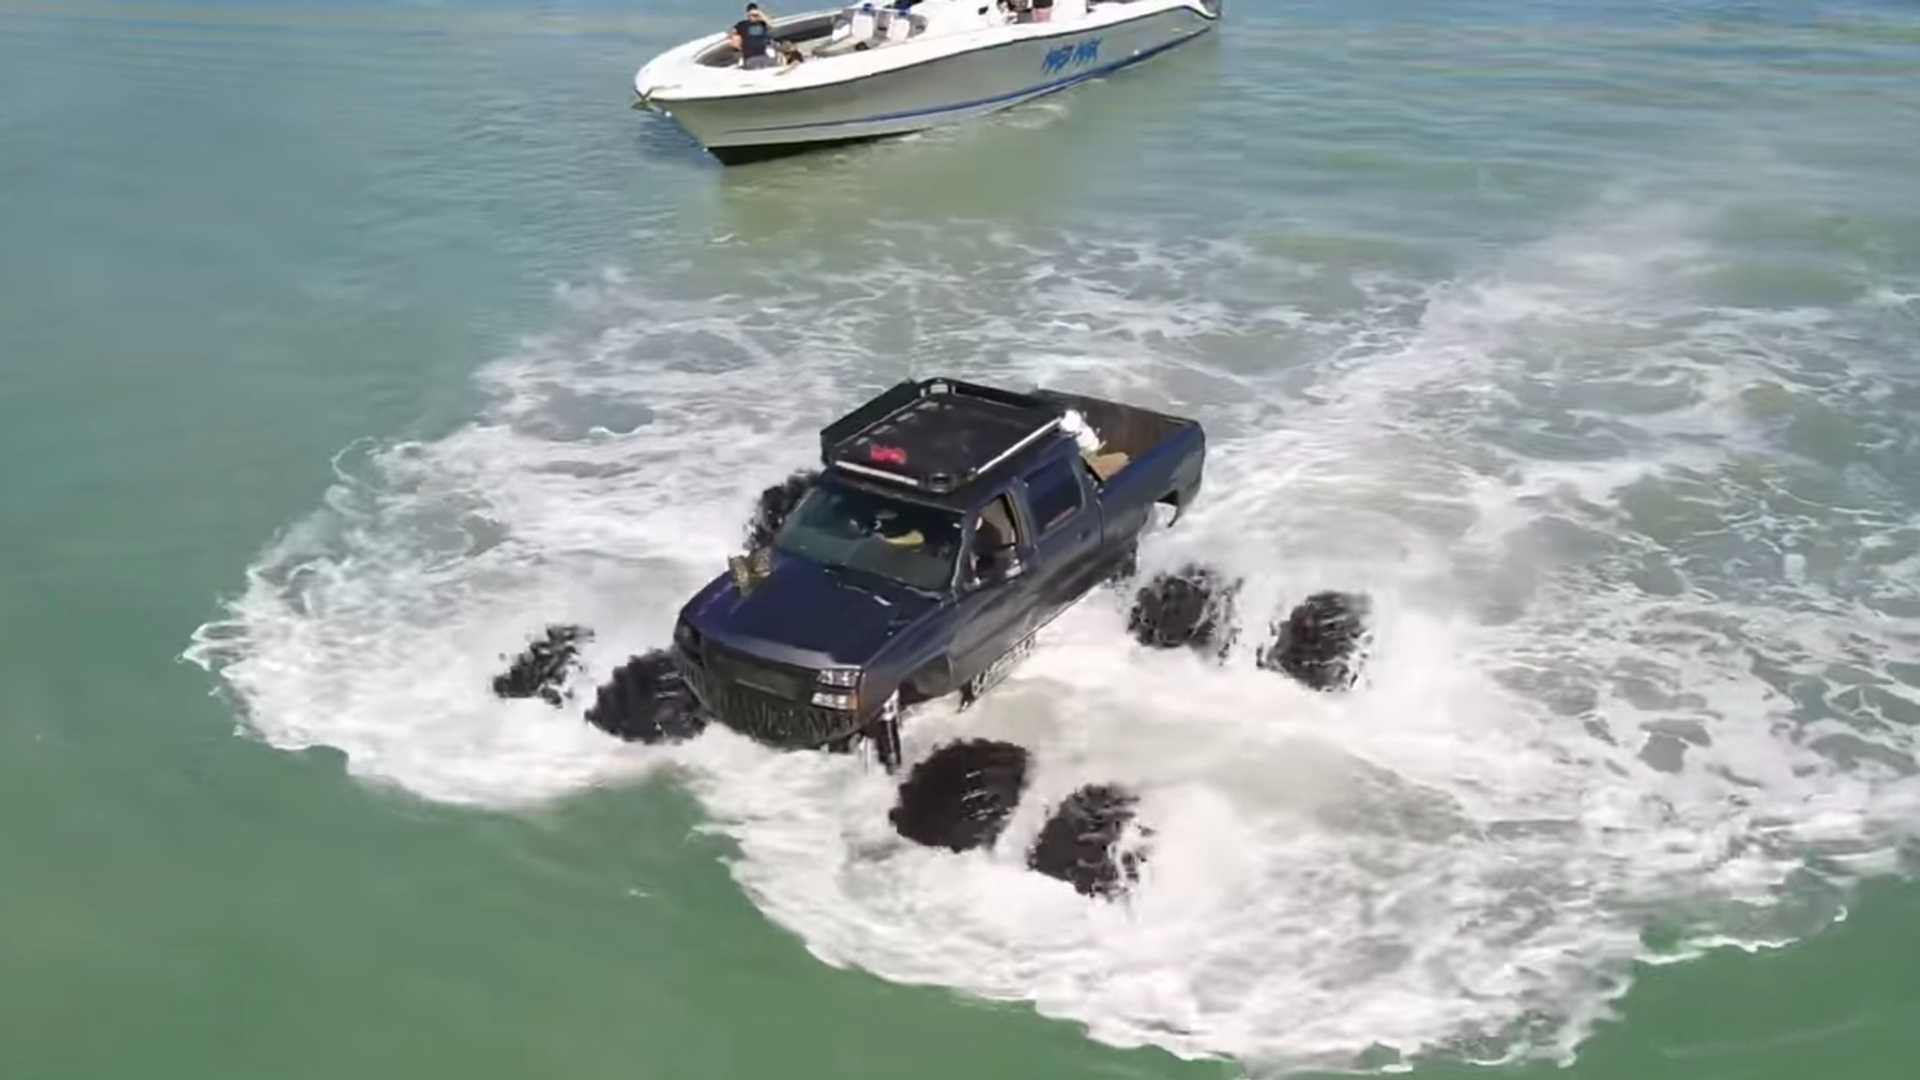 Massive Monstermax Pickup Can Float, Drives Right Into Gulf Of Mexico